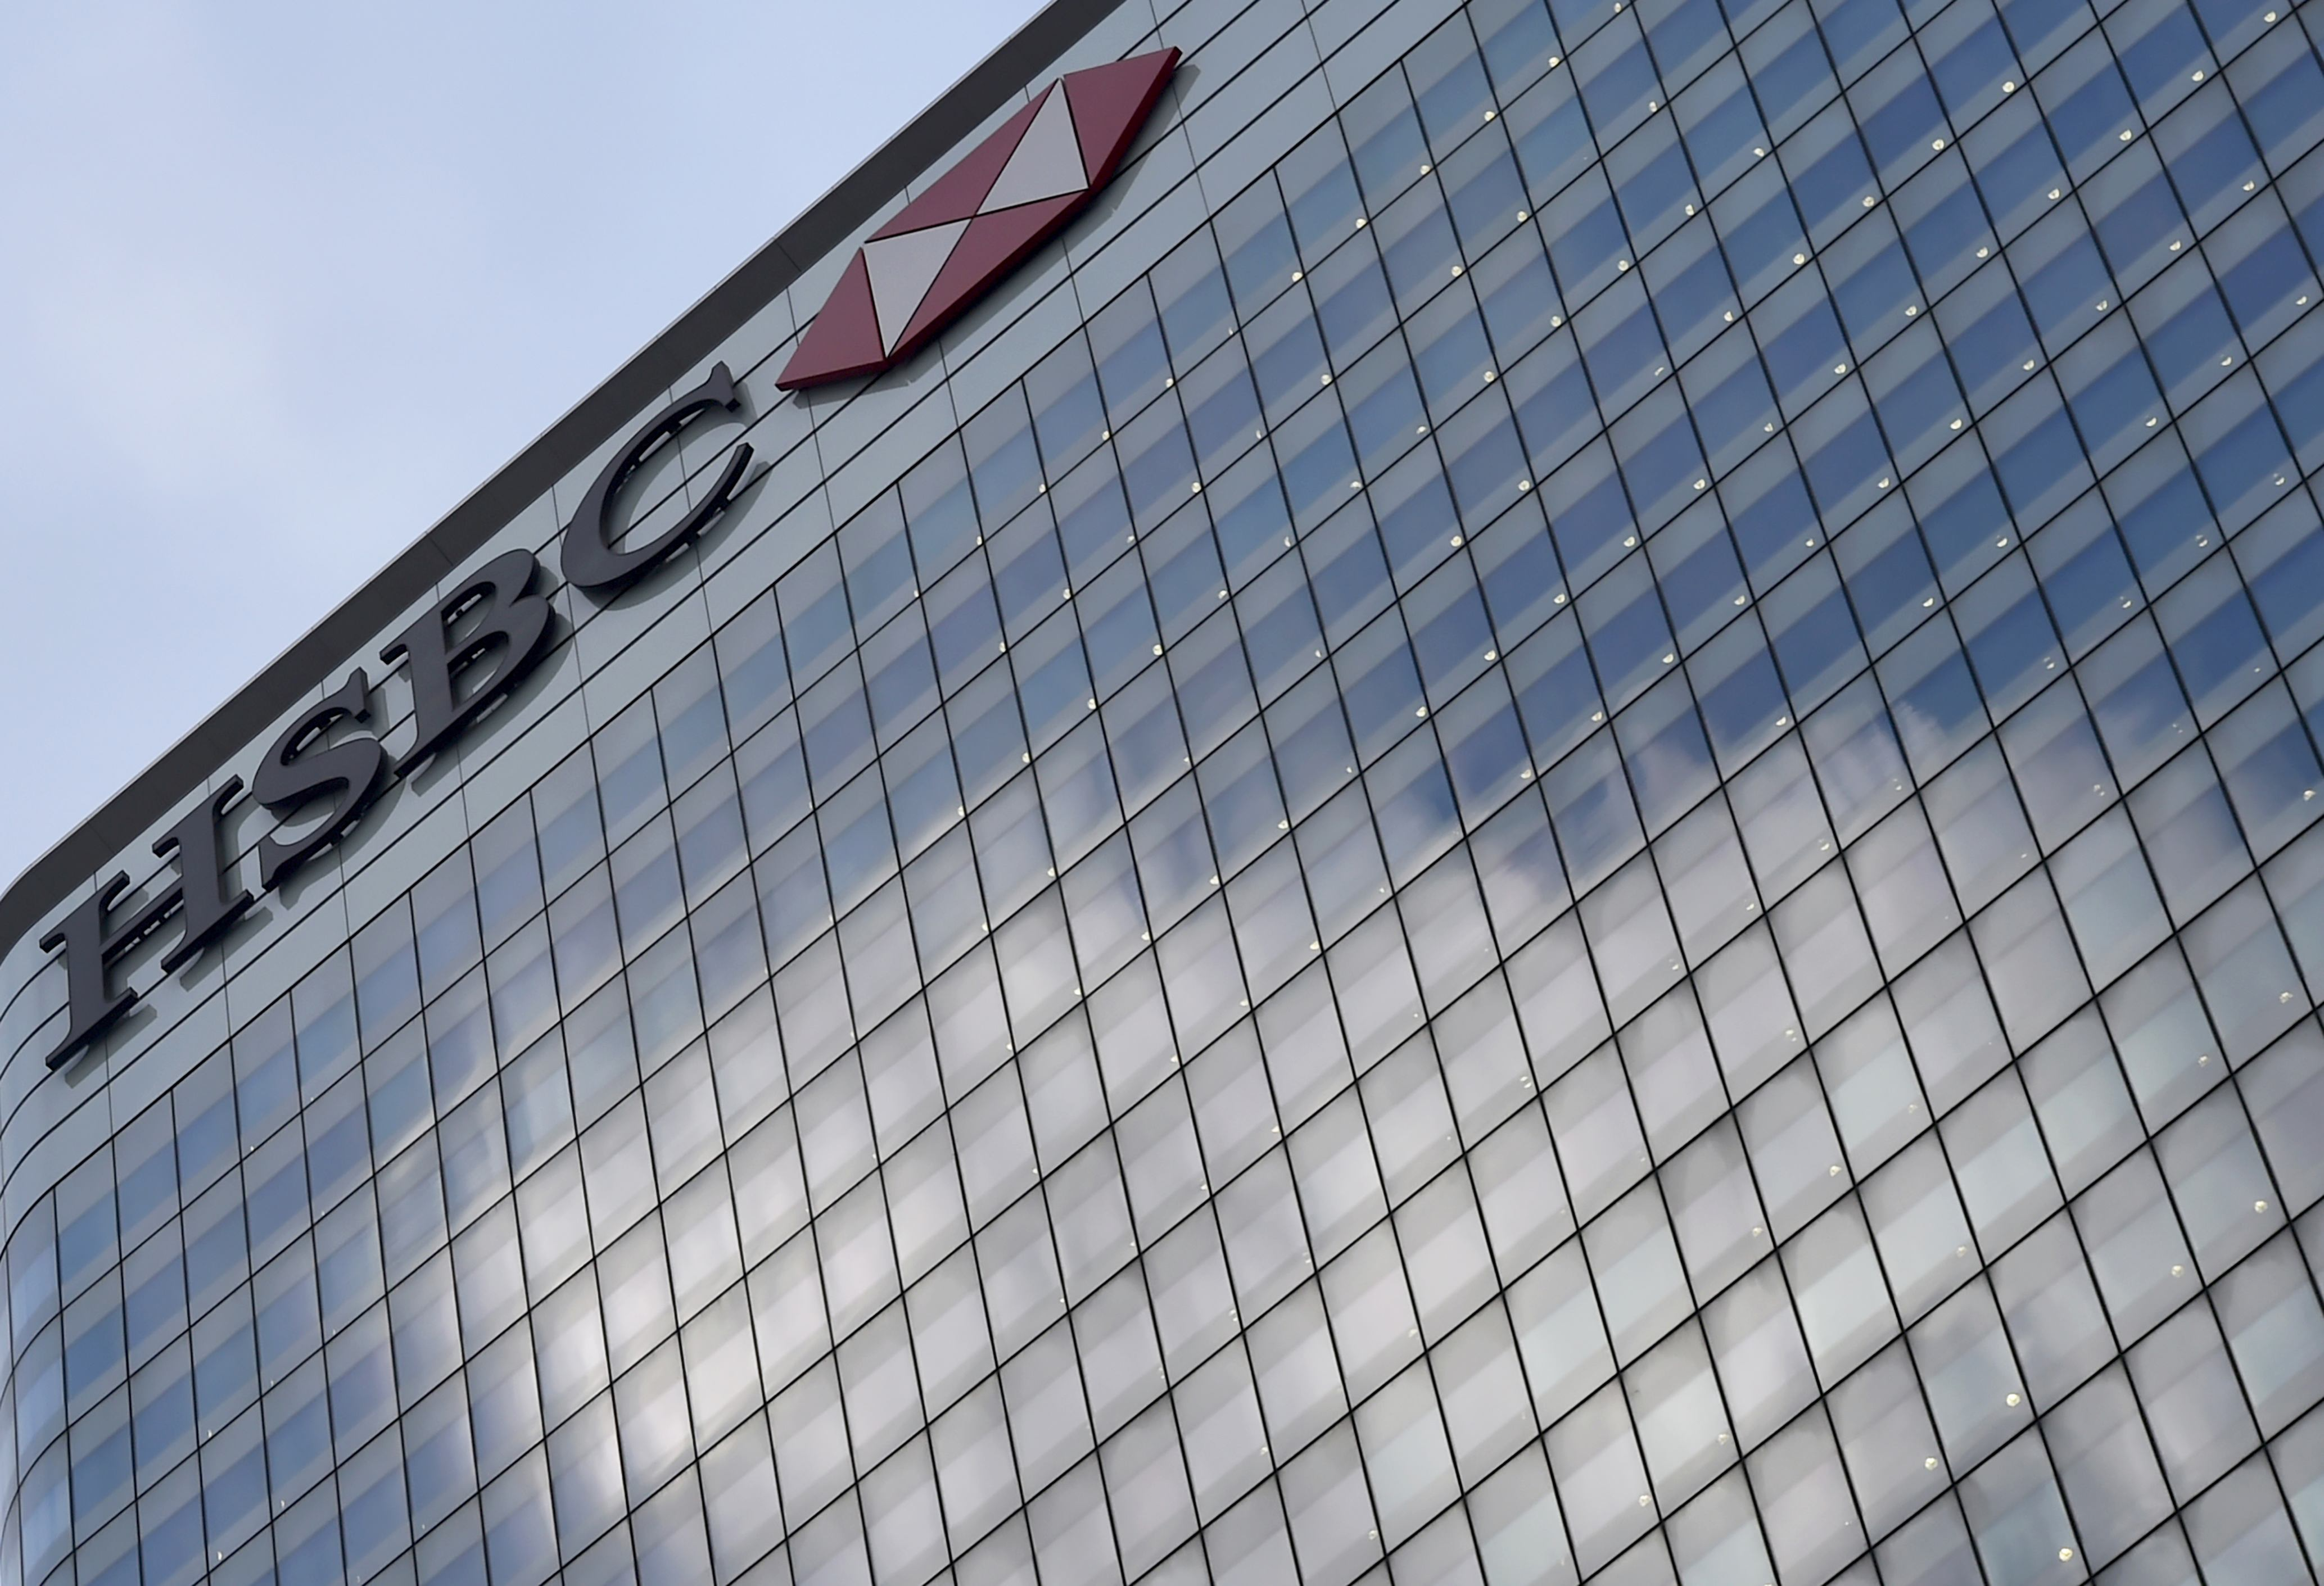 HSBC to pay Mass  homeowners $2 7m over insurance practices - The